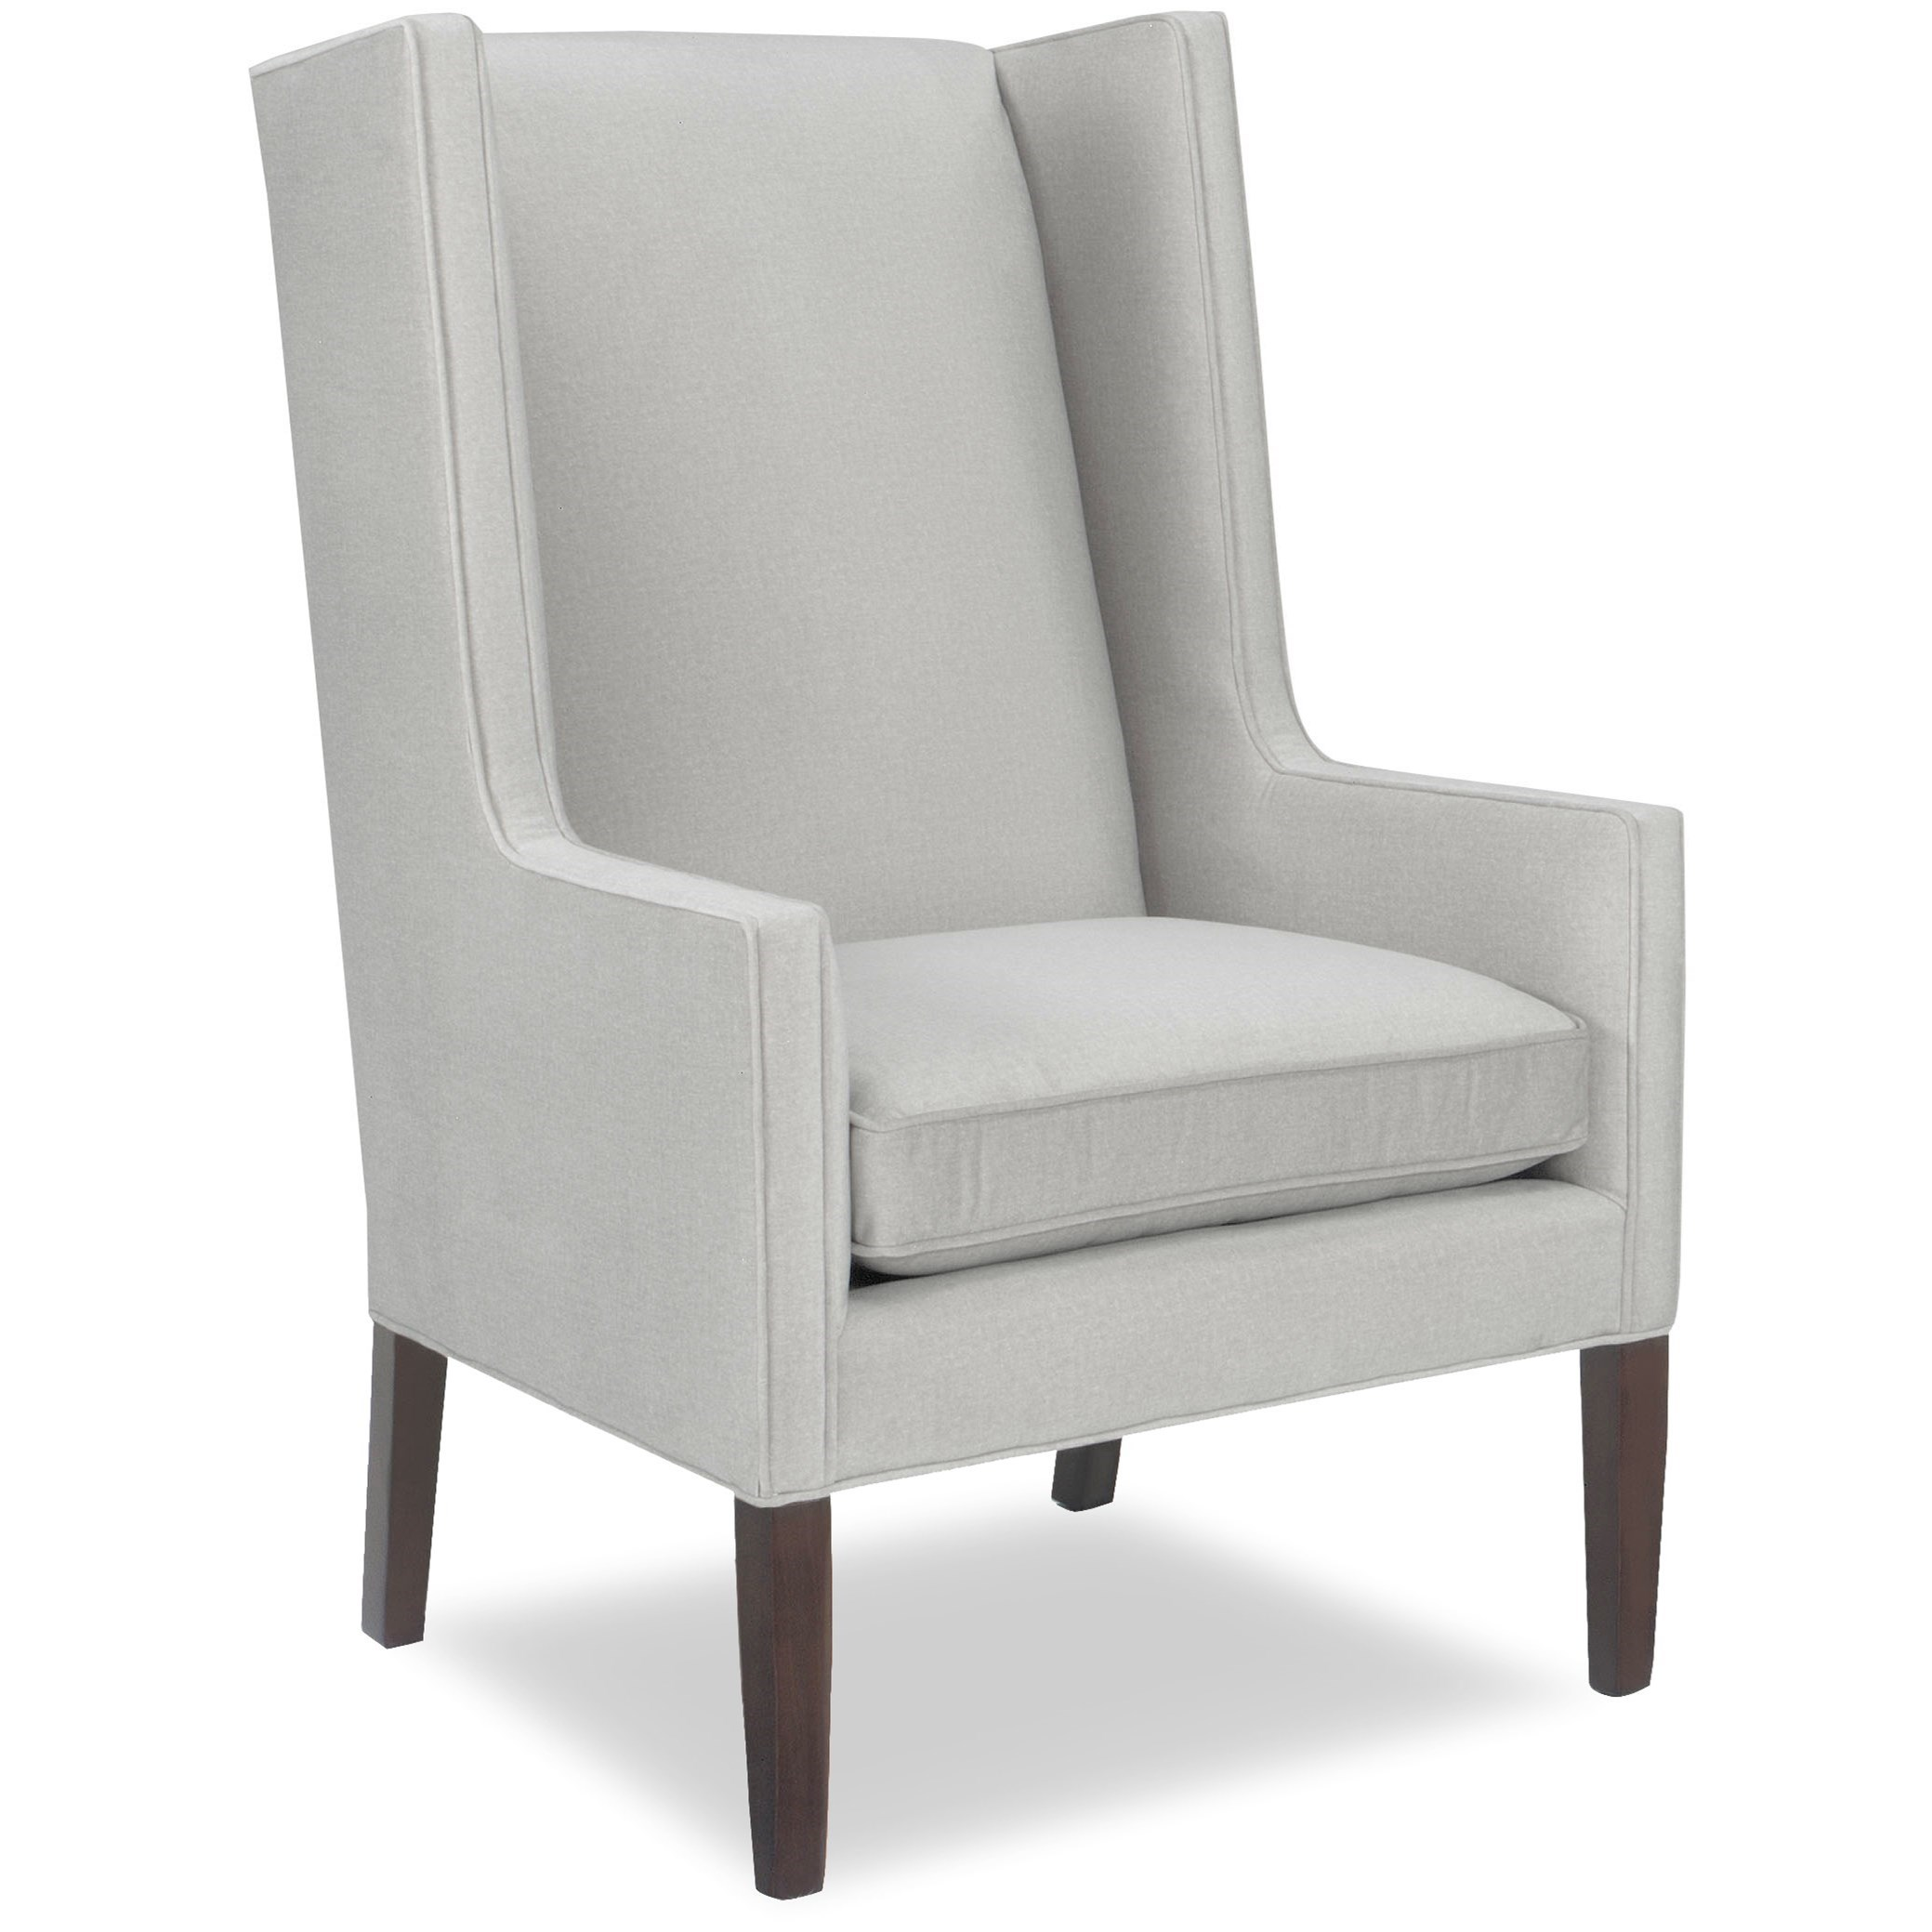 6300 Upholstered Chair by Temple Furniture at Esprit Decor Home Furnishings